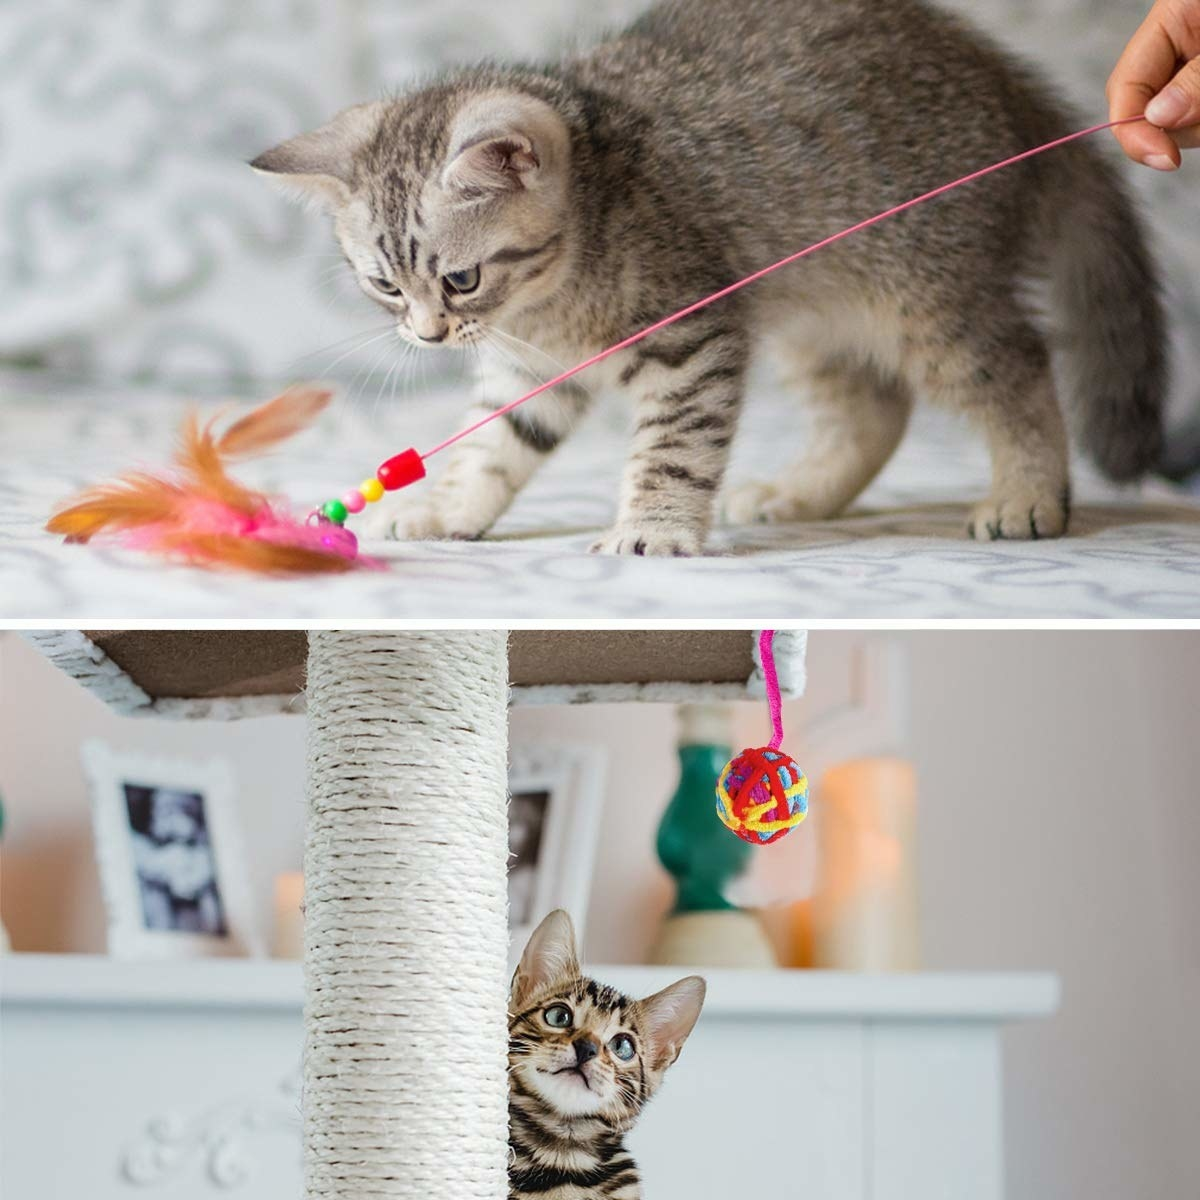 2 images showing cats playing with toys.